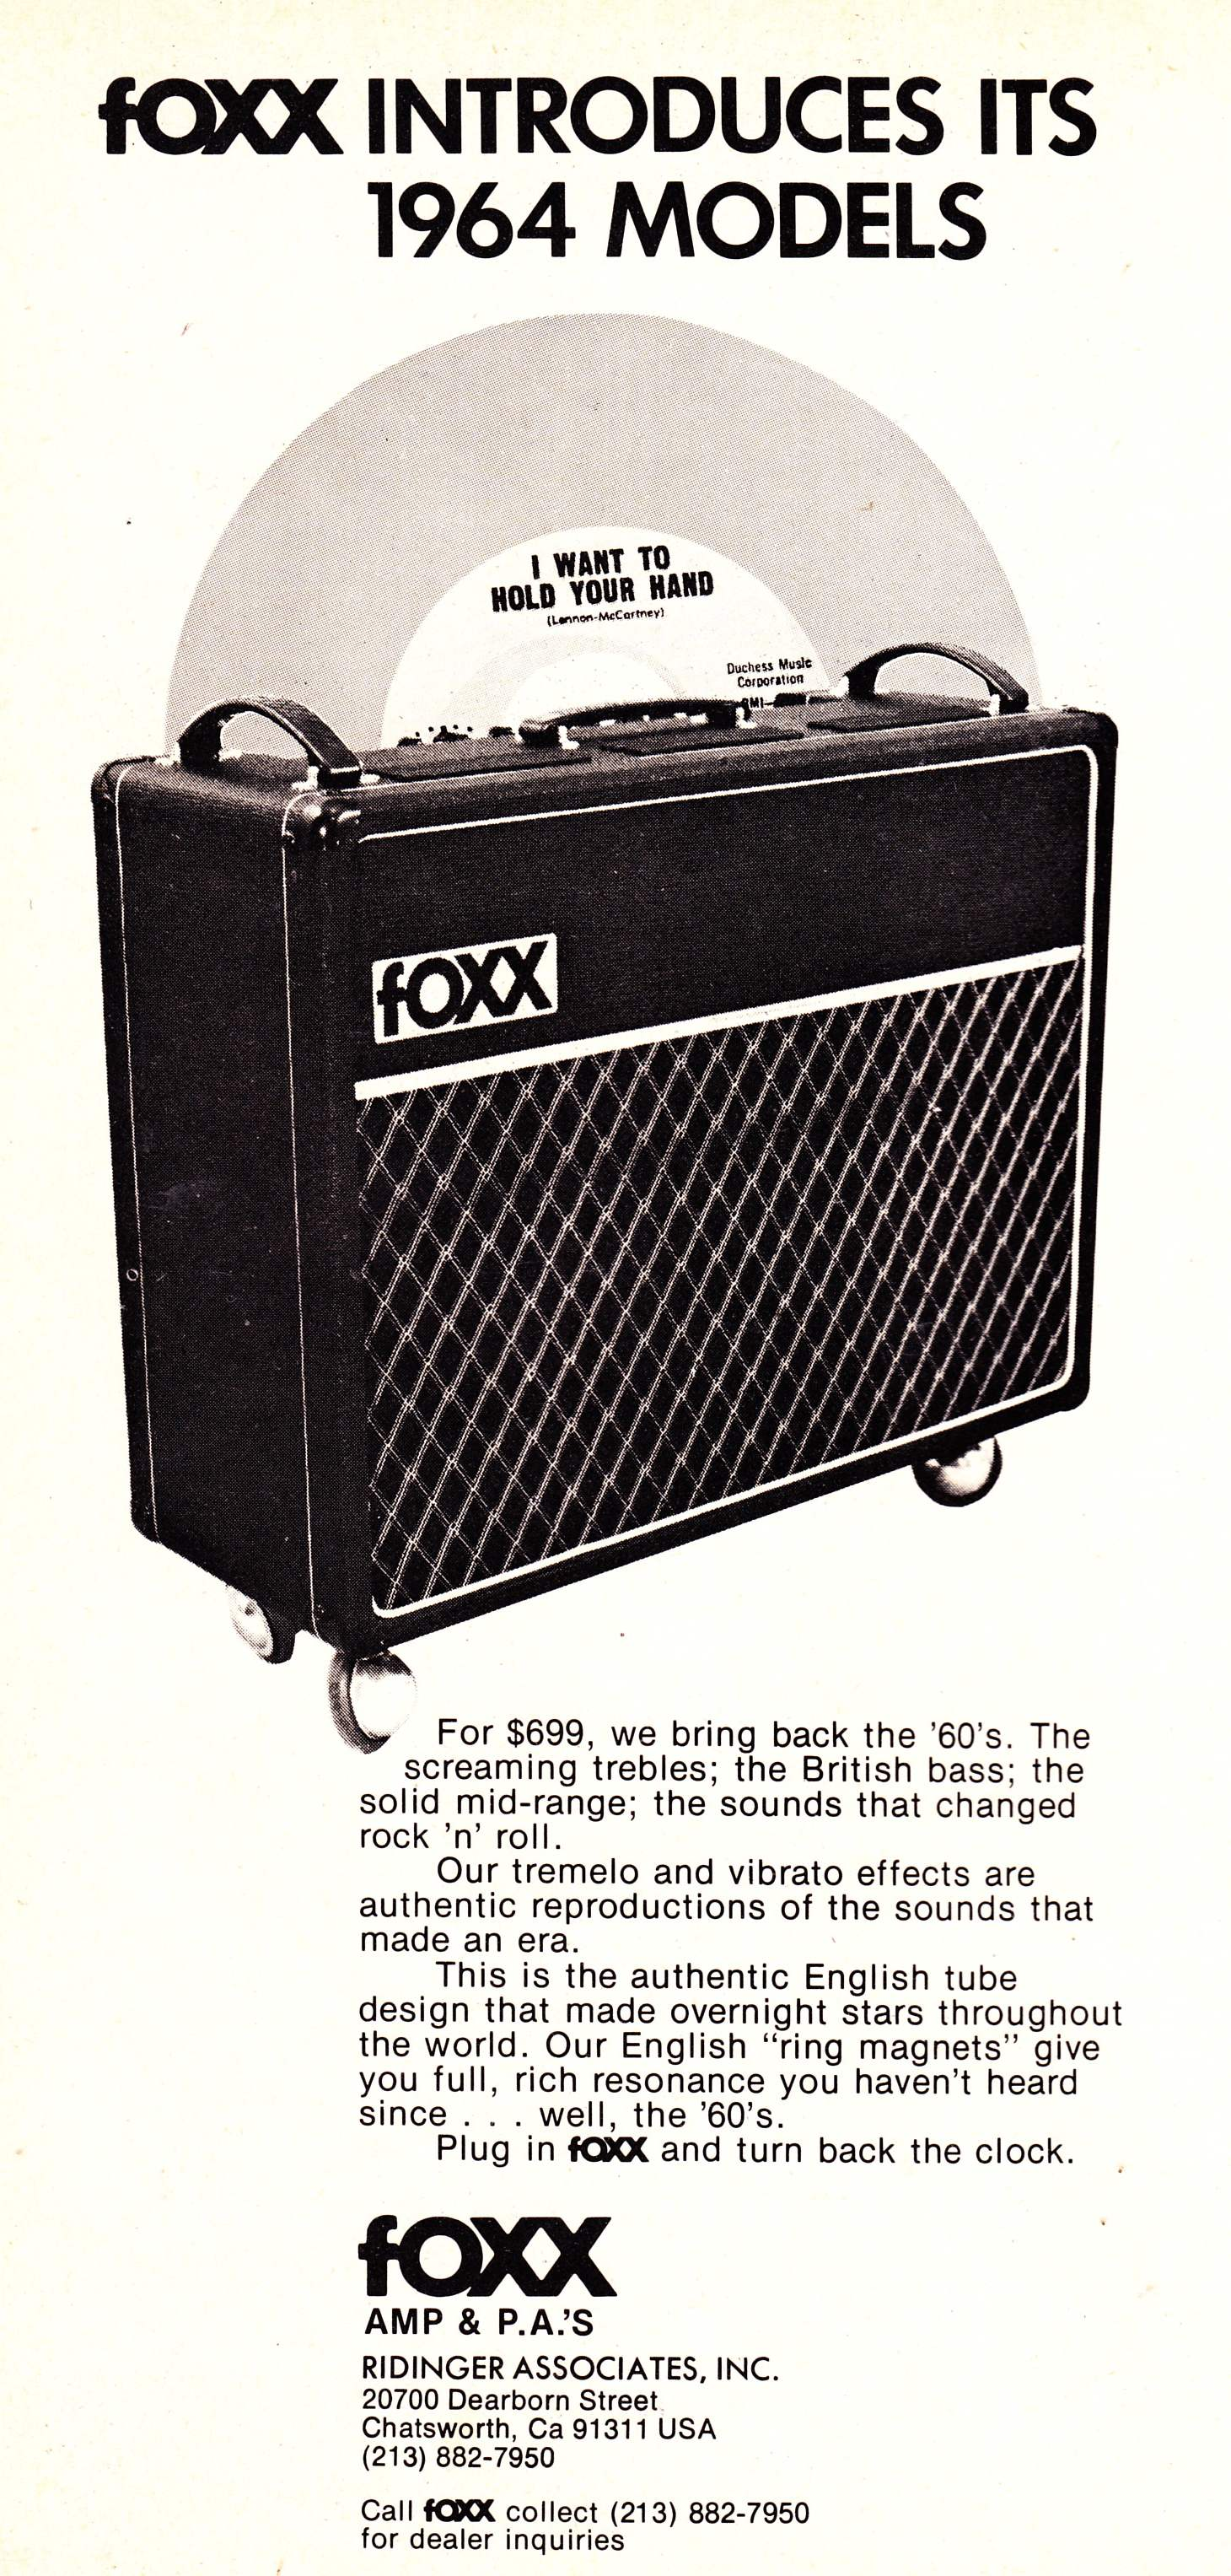 Boxxes Of Foxxes Preservation Sound Guitar Circuits And Schematics Fuzzi Amps Other Effects Besides The Iconic Foxx Pedals Also Sold Amplifiers Lets See If You Have A Company Named Want To Sell Some What Famous Amp